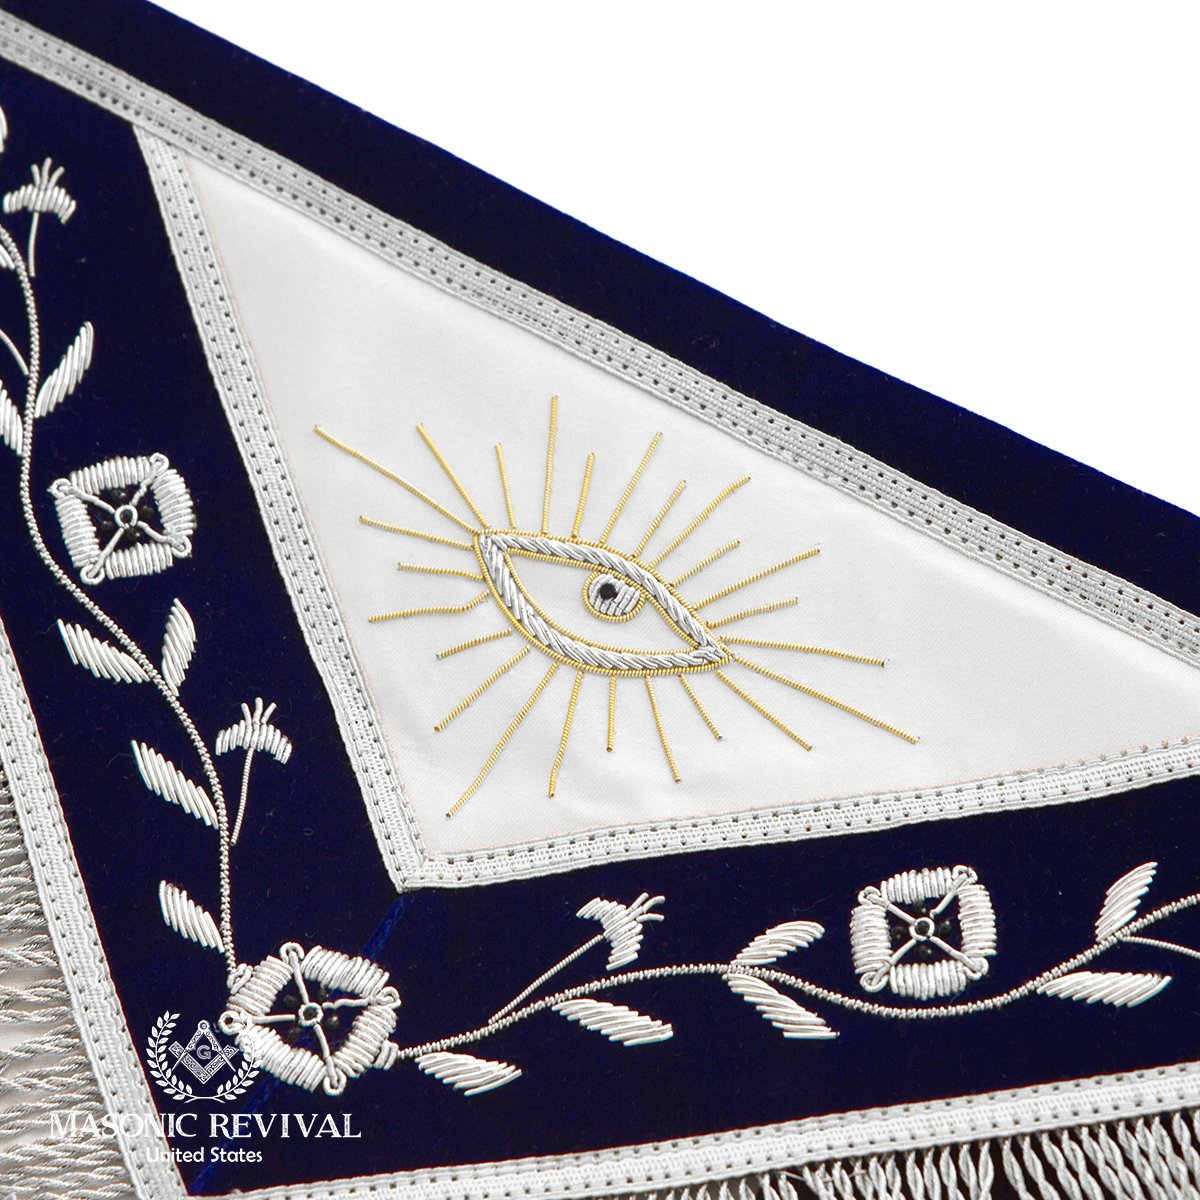 El Mixto Bullion Past Master Apron by Masonic Revival (with Square) by Masonic Revival (Image #3)